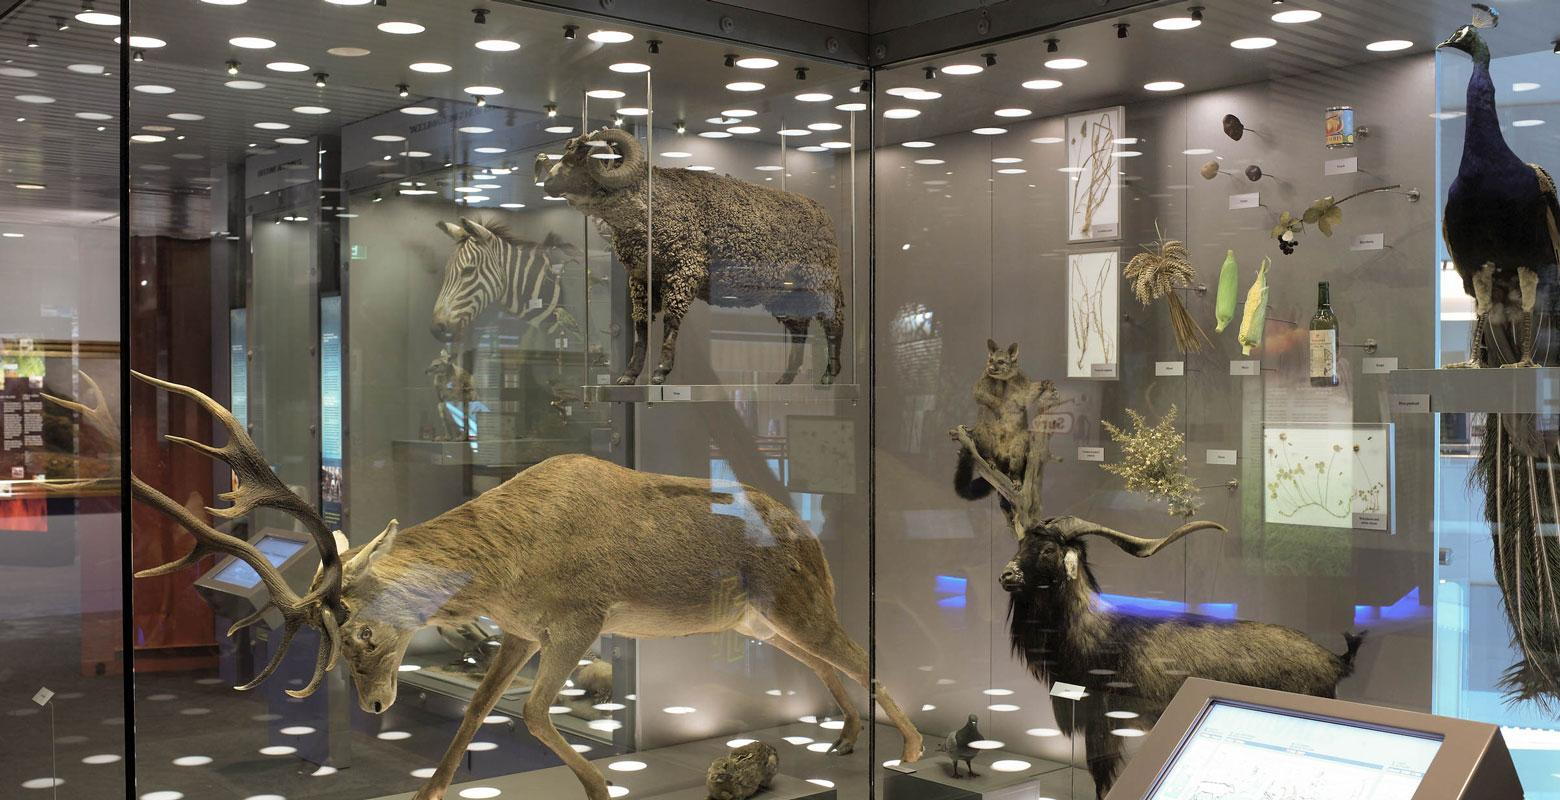 Lots of taxidermy animals in a display case including a stag, possum, and peacock